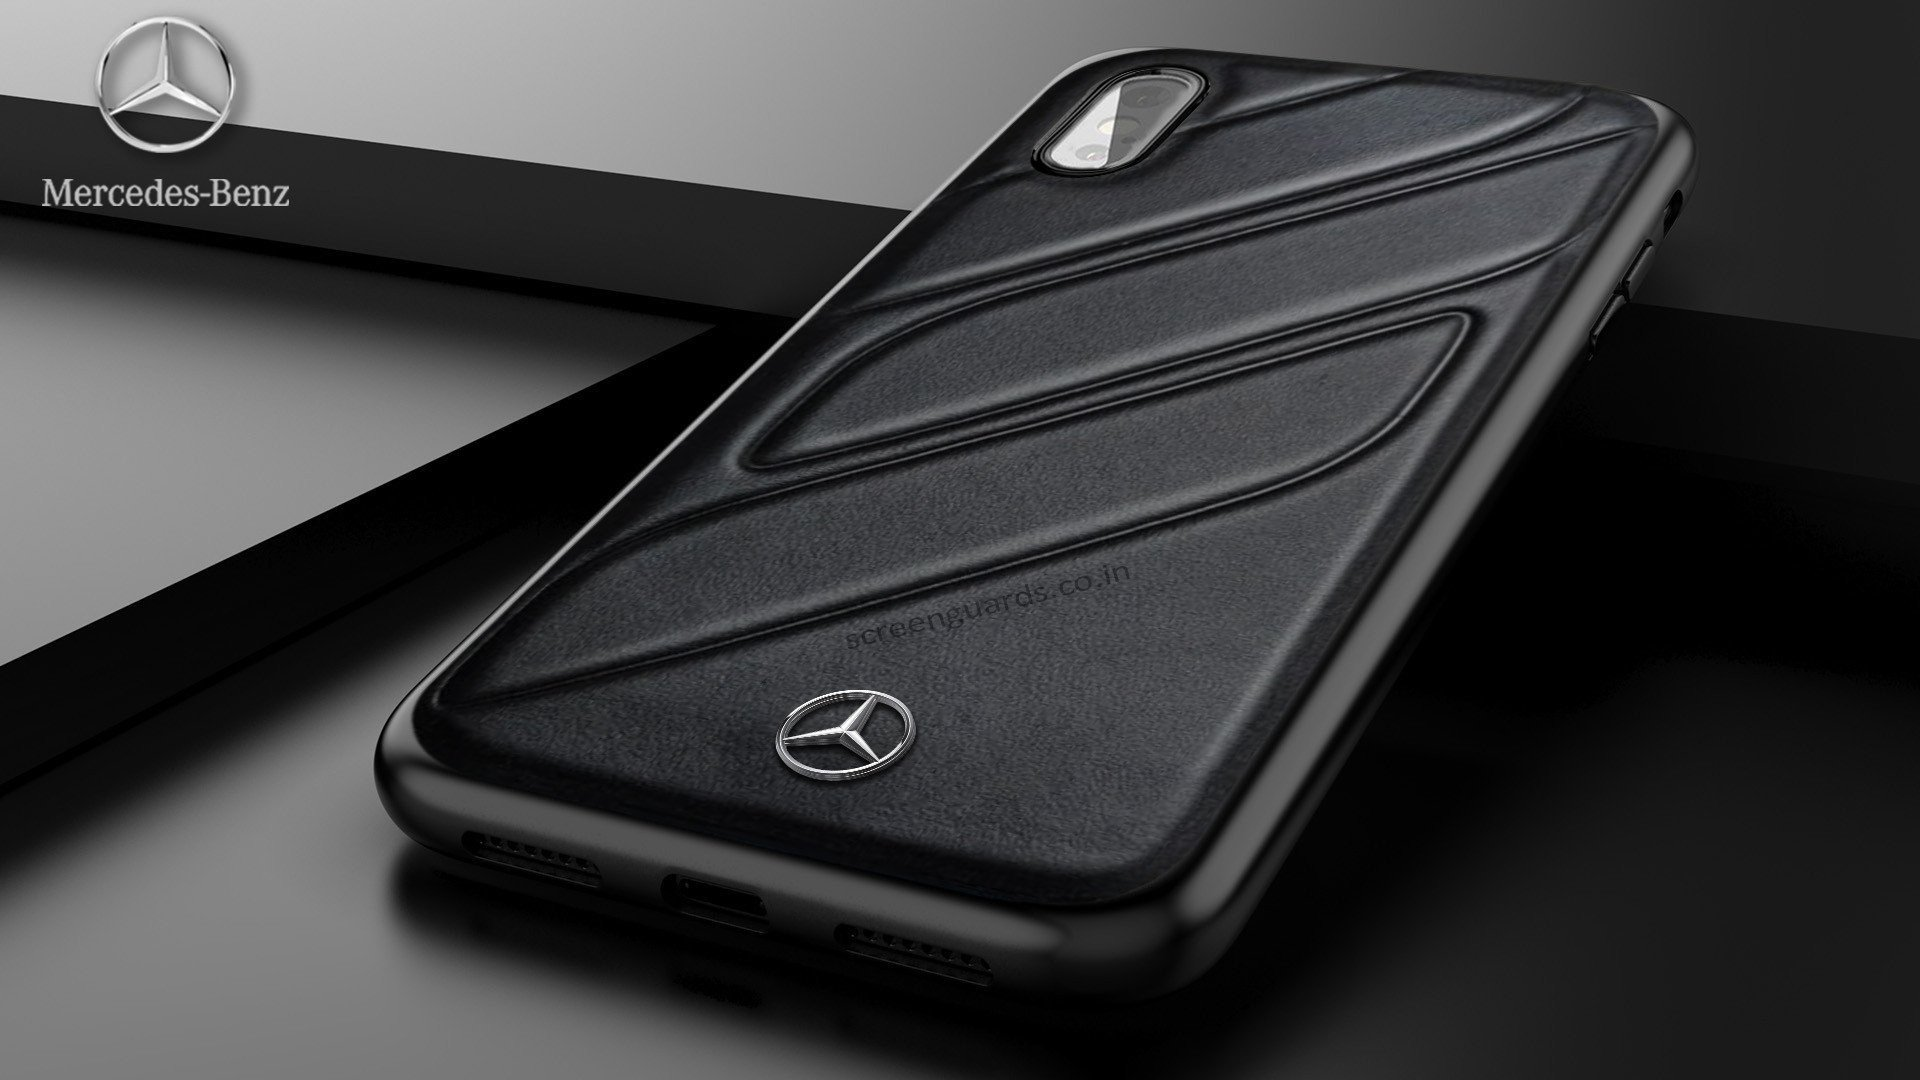 Mercedes Benz Iphone Xs Max Cla Class Raven Leather Back Cover